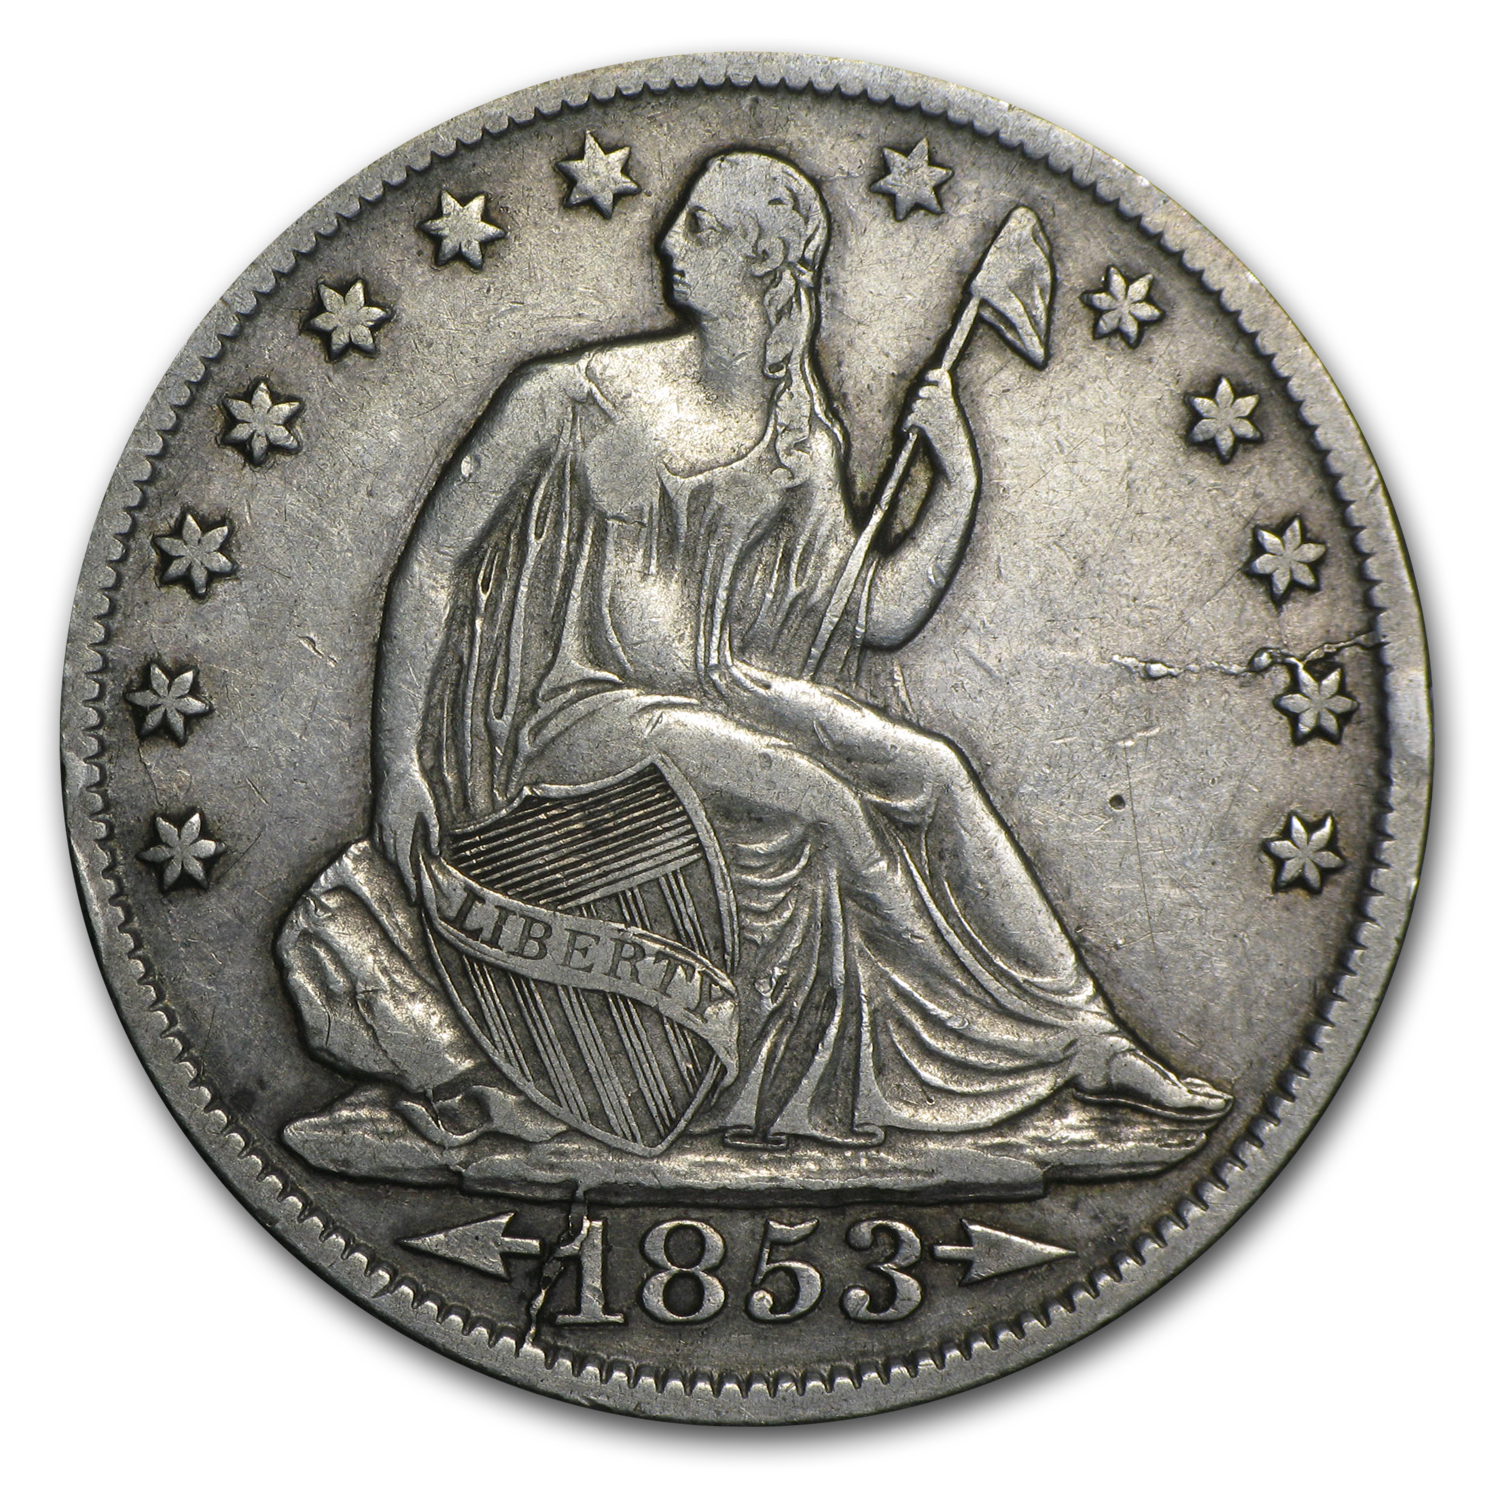 1853-O (w/ Arrows & Rays) Liberty Seated Half Dollar - Extra Fine